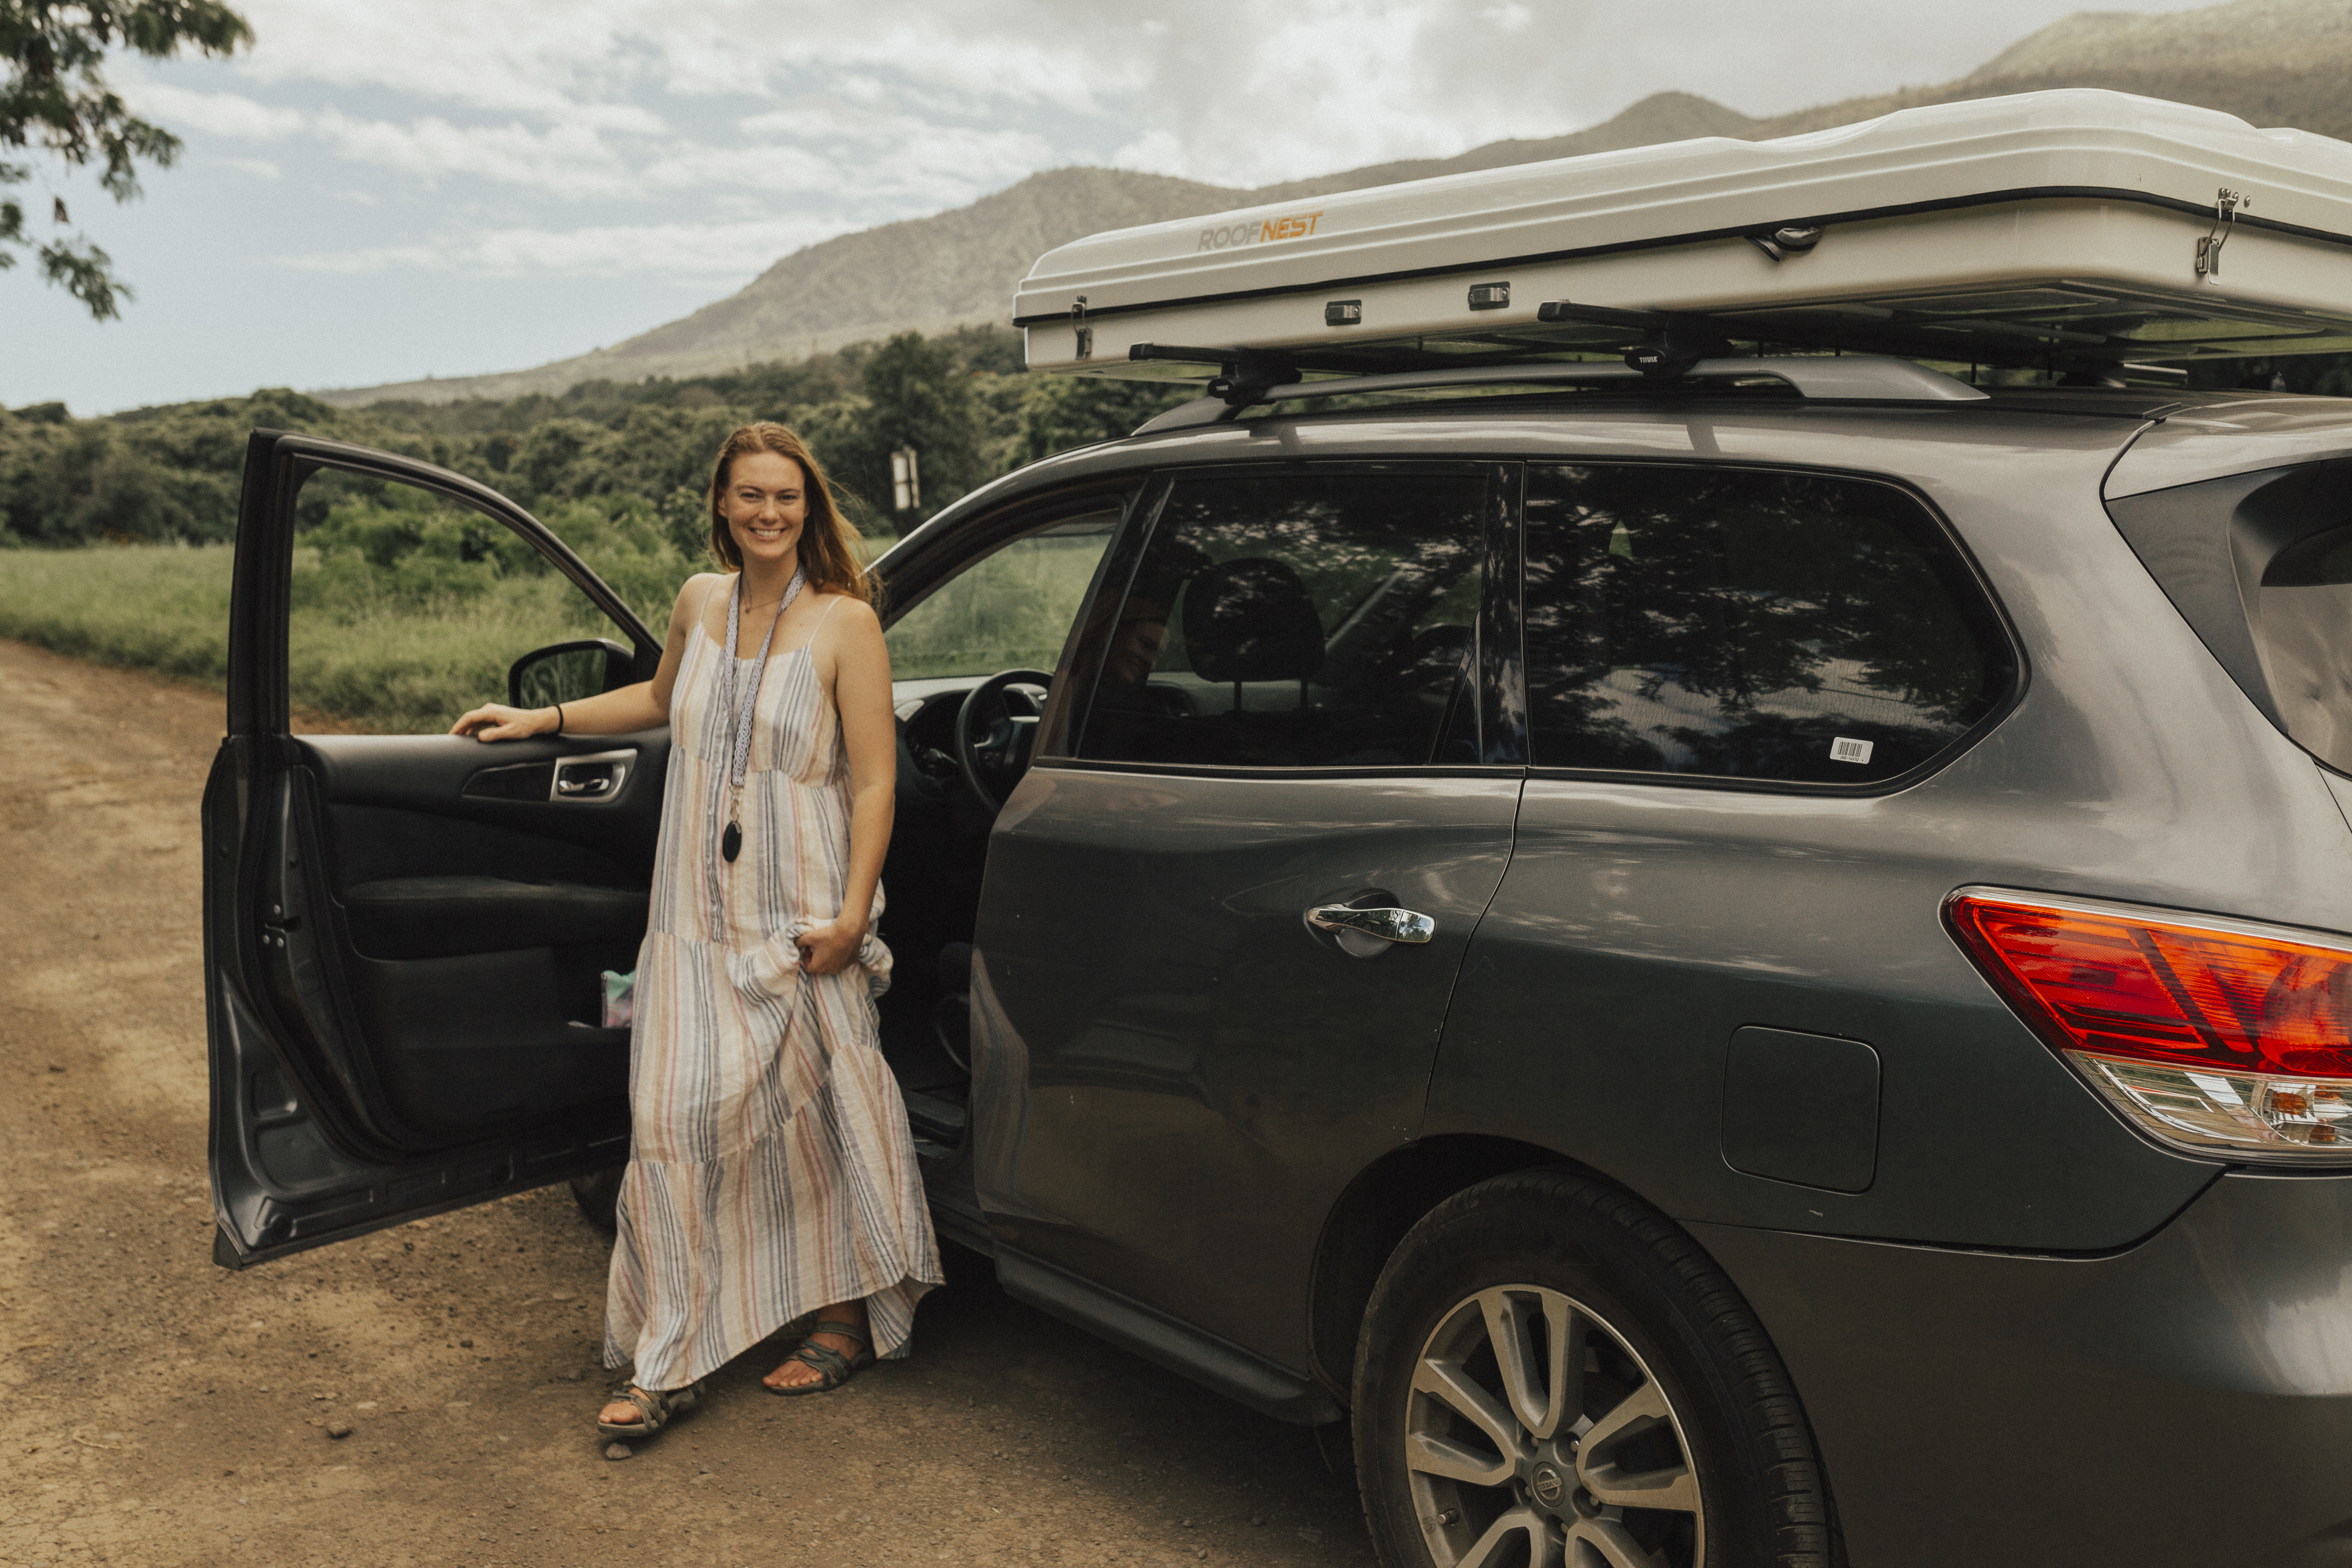 Purrrfect RV for Maui adventures!    Photos by Brooke Lambe. Nissan Pathfinder 2016